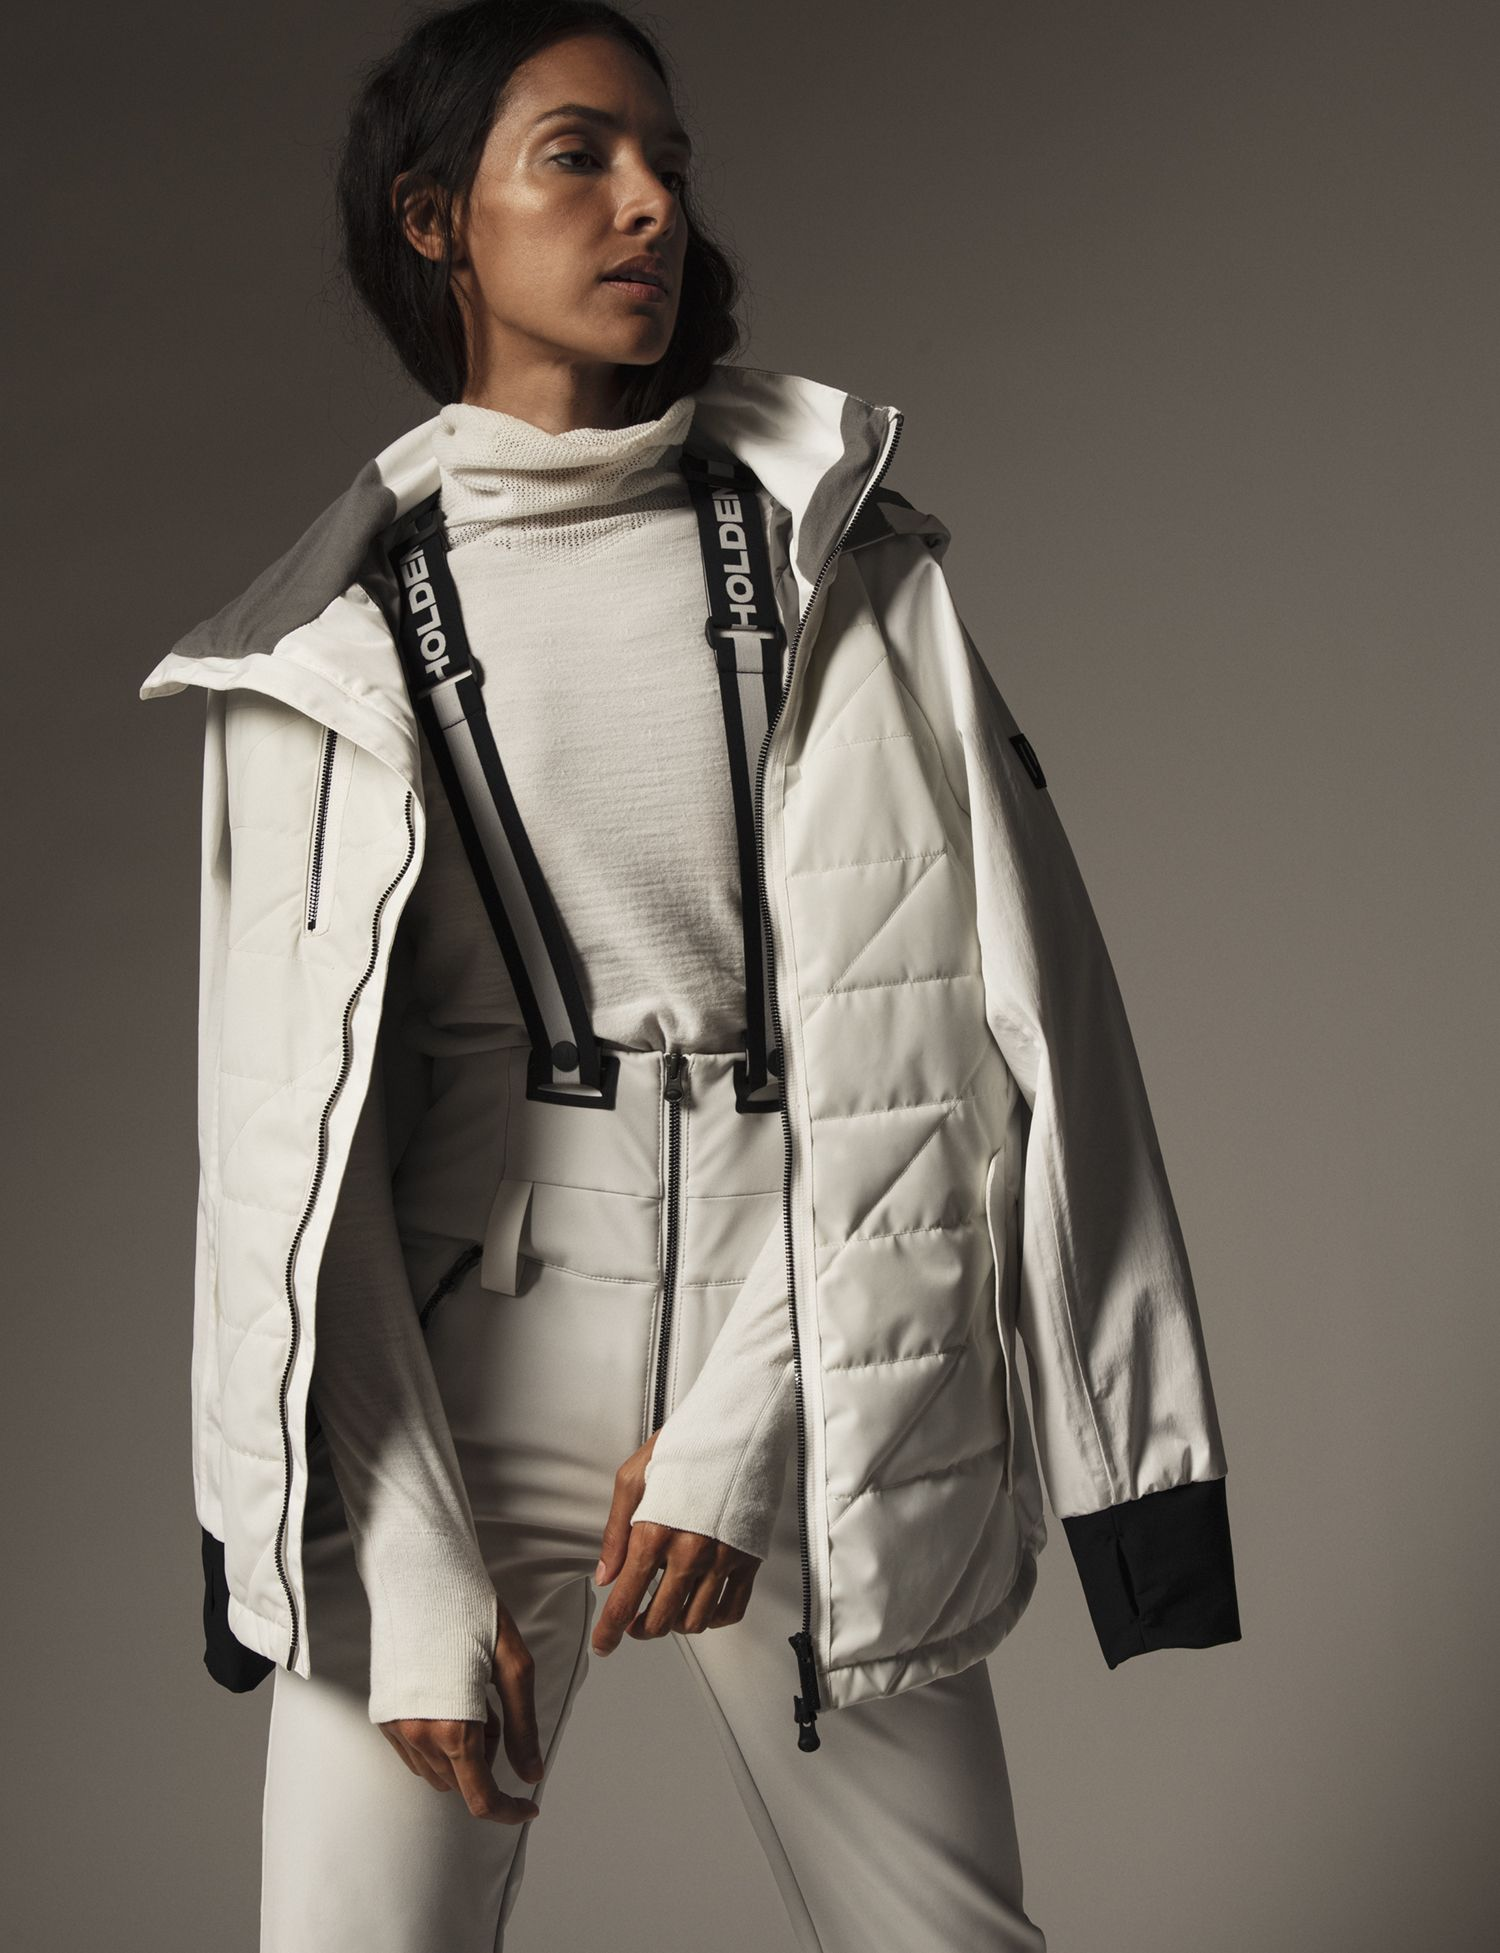 Pin By Holden Outerwear On Holden Fw19 Collection Holden Outerwear Outerwear Performance Outfit [ 1953 x 1500 Pixel ]